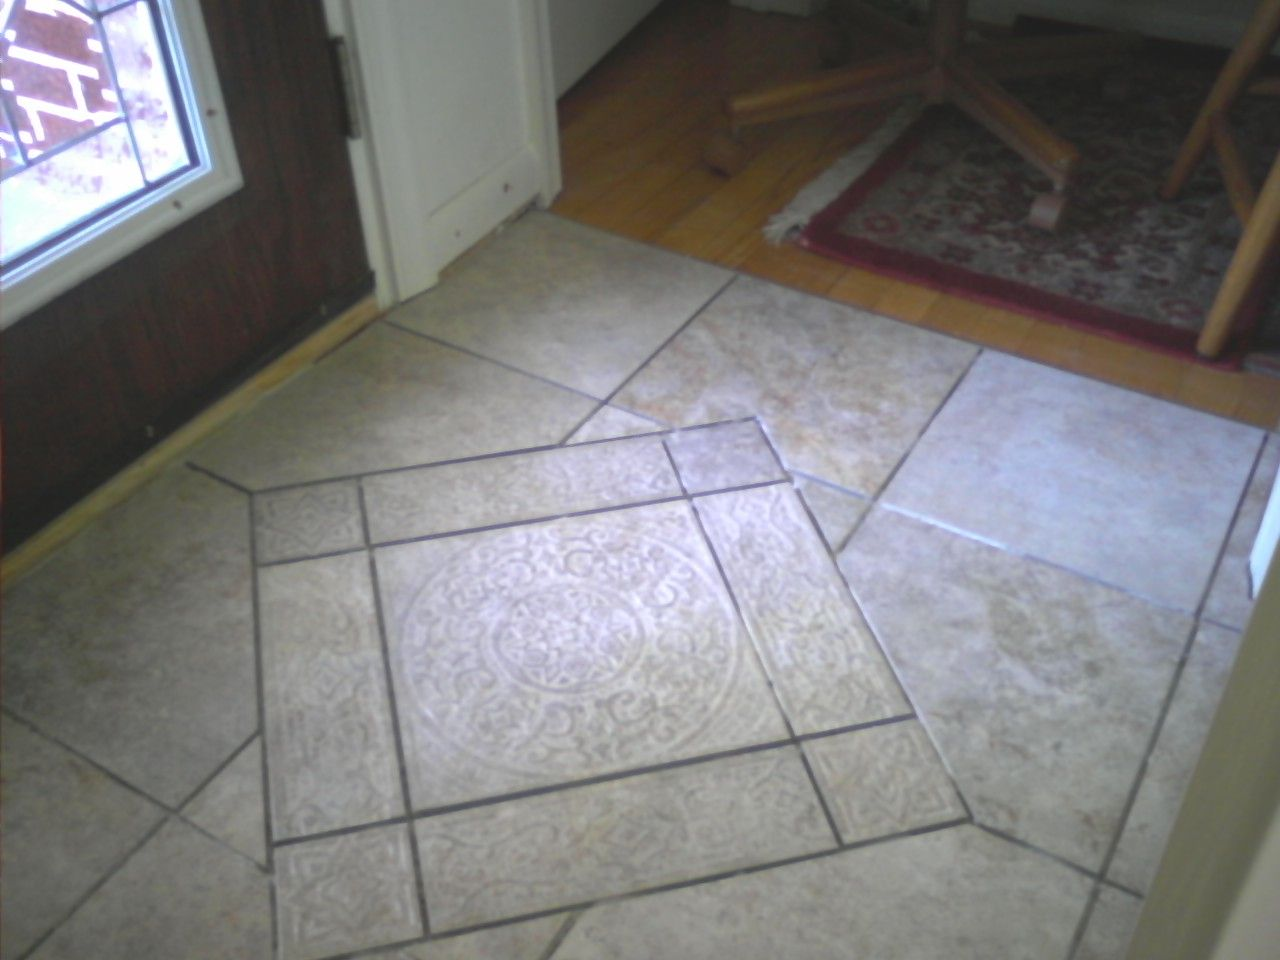 Tiled Entryway Http://homesteadtile.com/images/0709090923